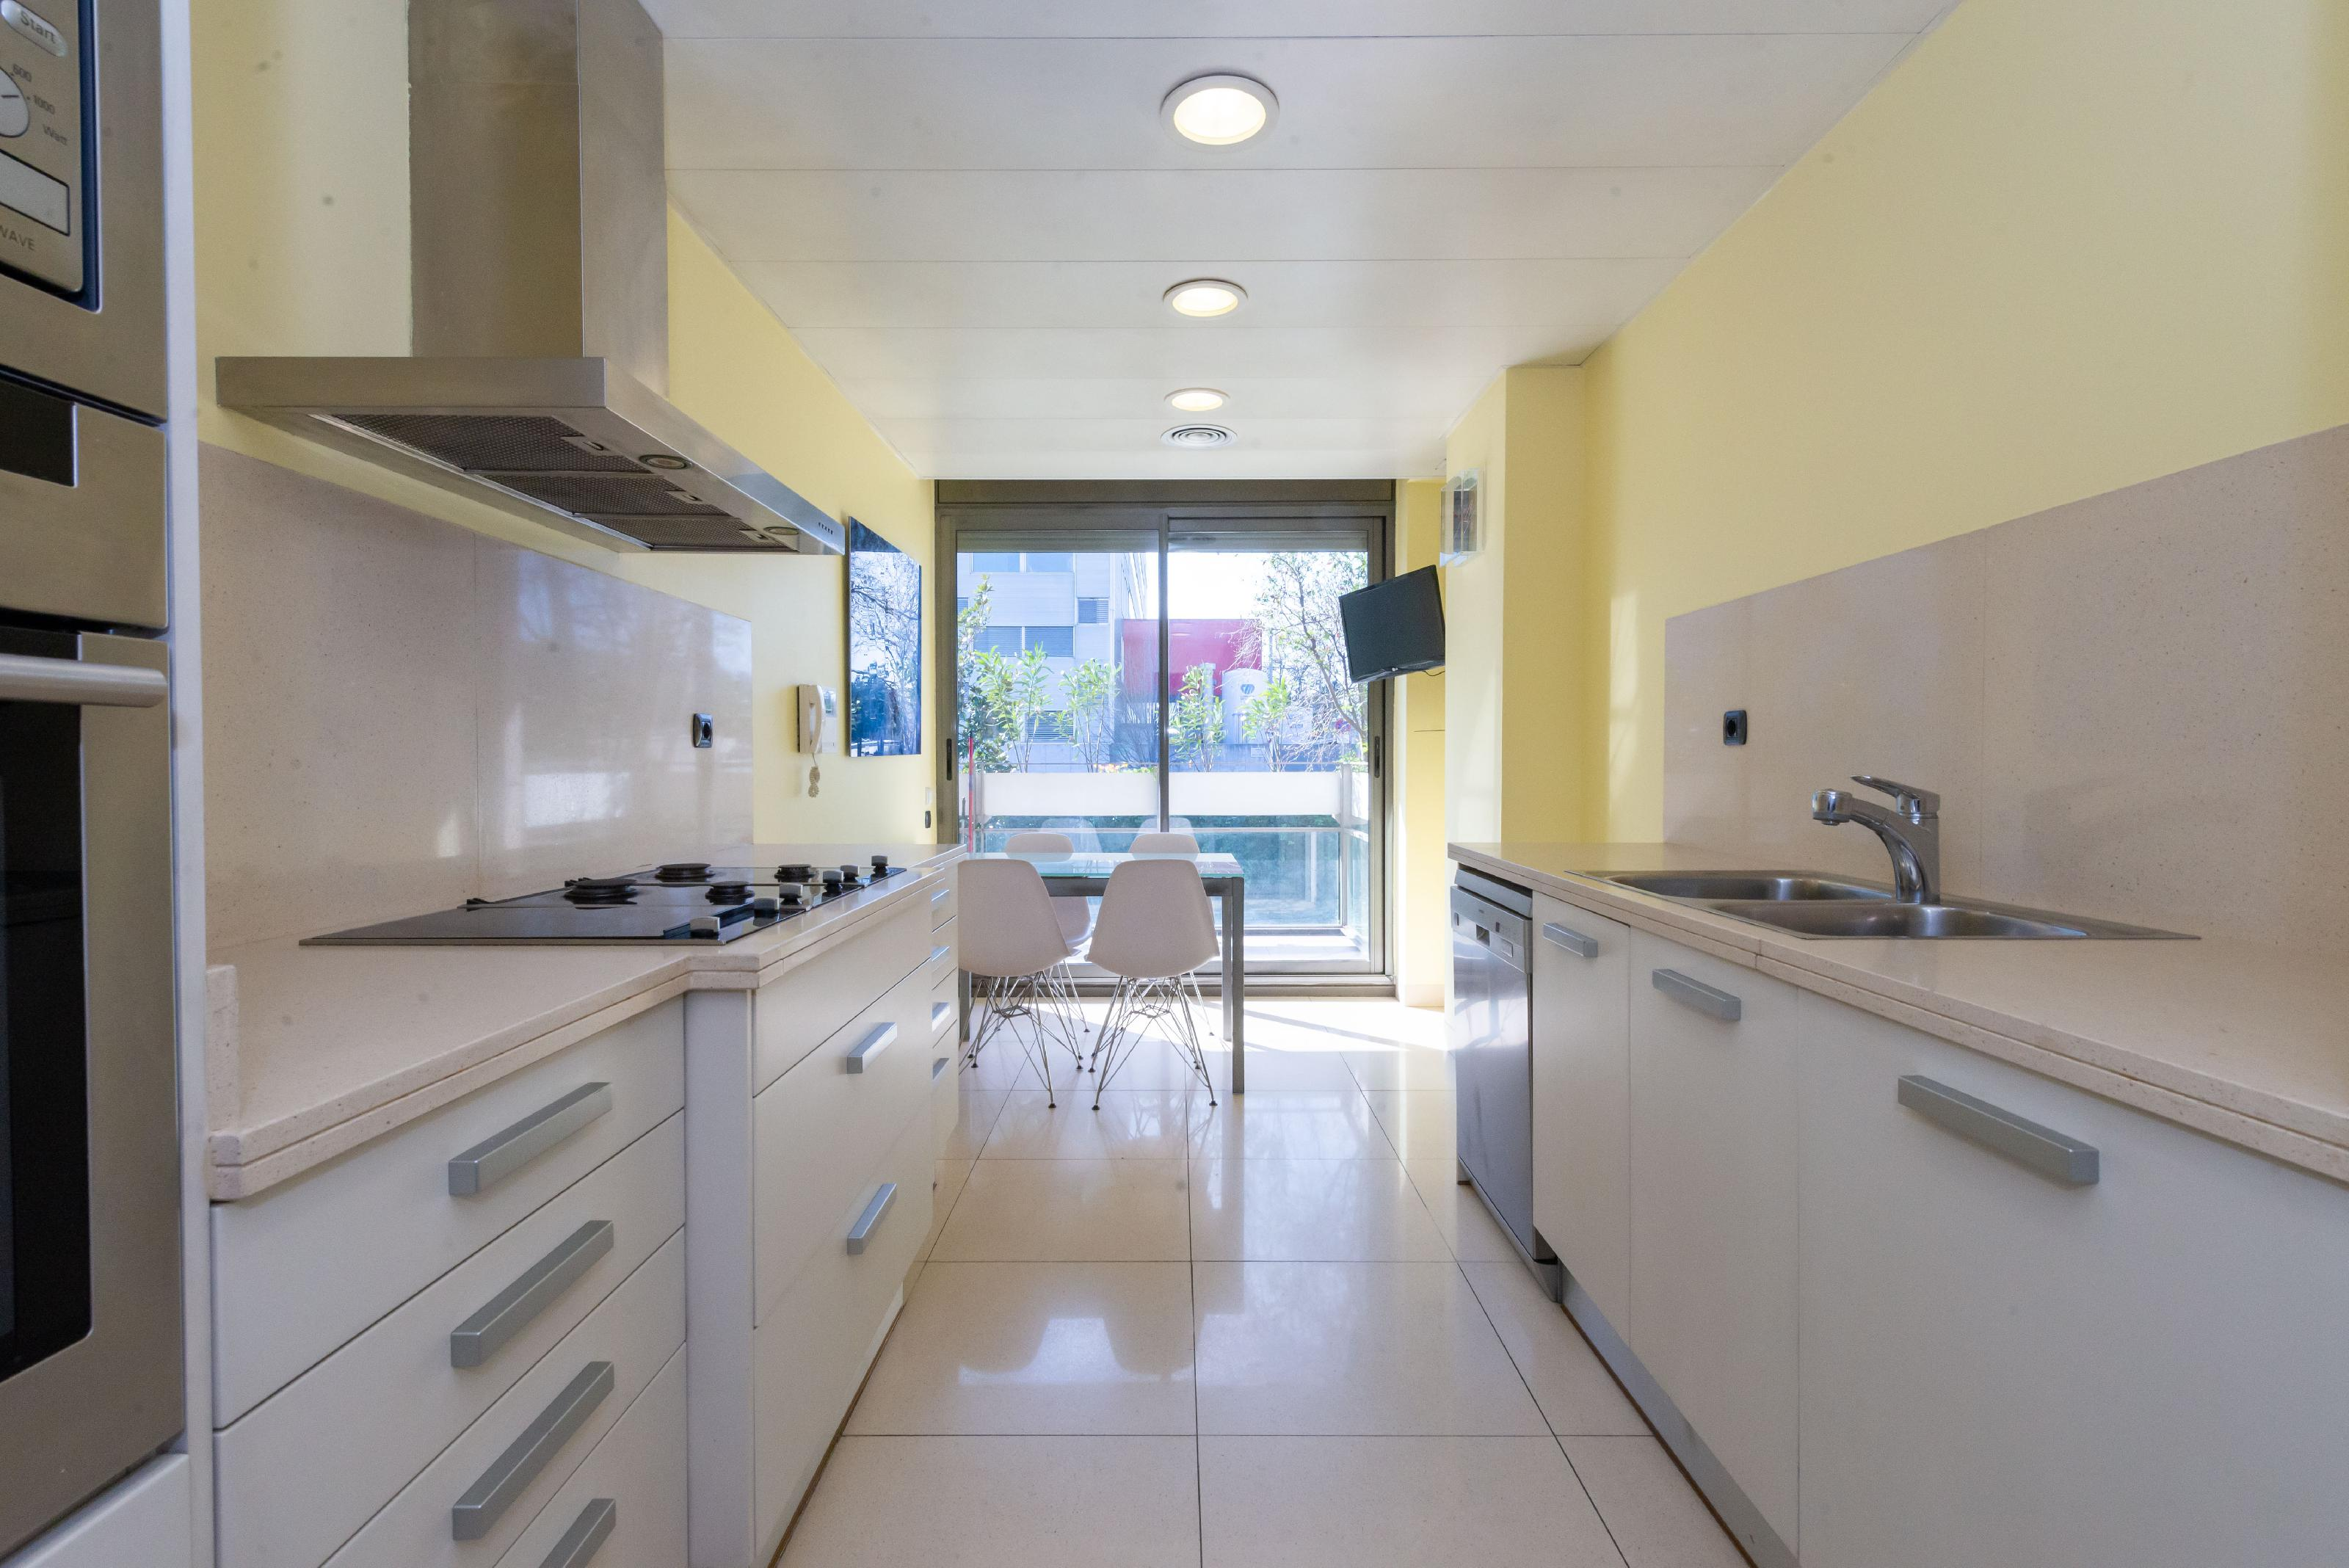 246682 Flat for sale in Gràcia, Vallcarca and Els Penitents 19